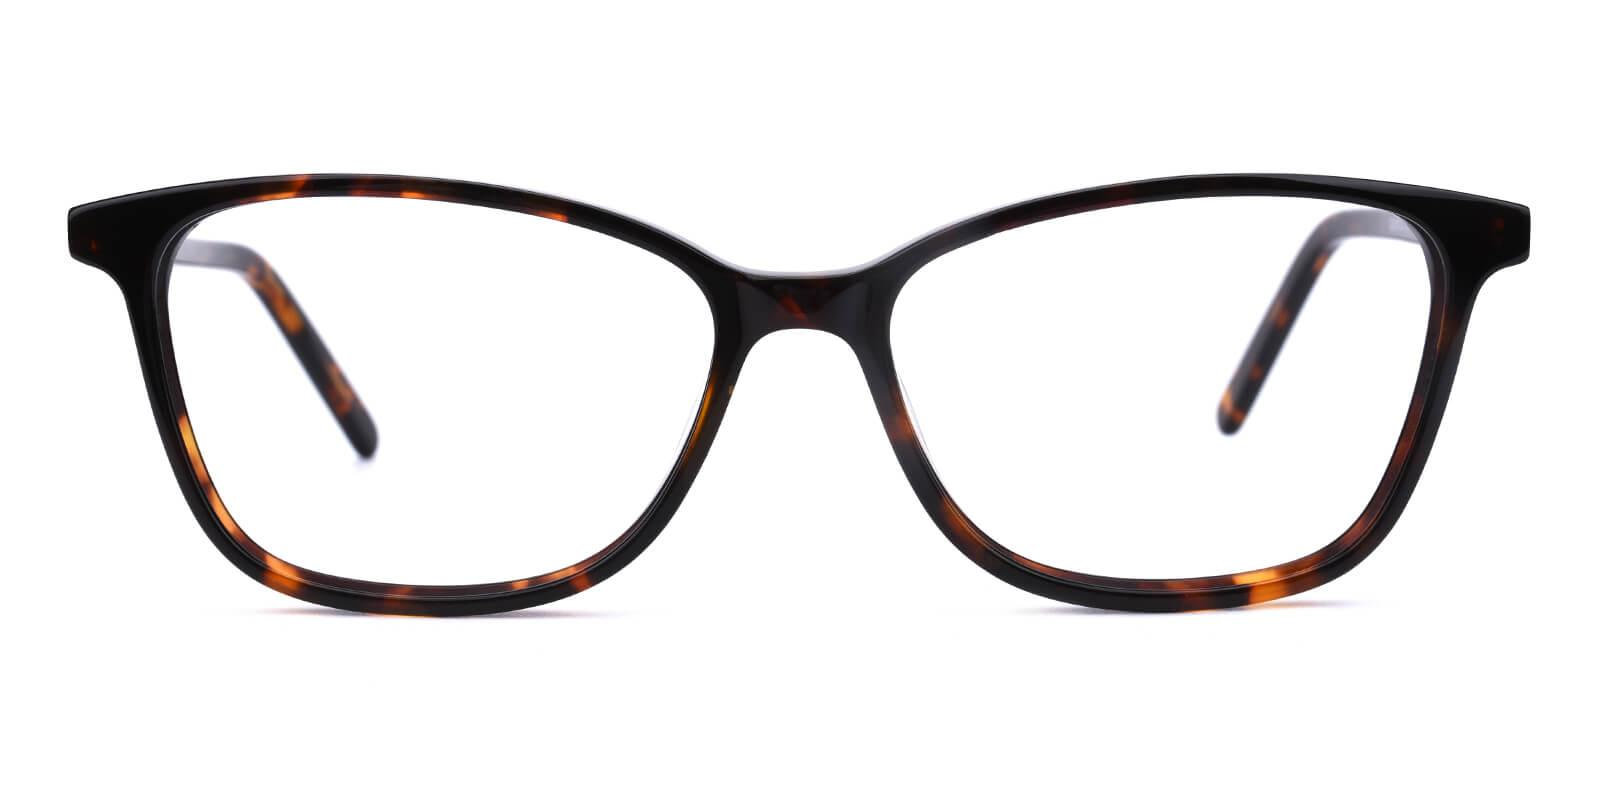 Believe-Tortoise-Square / Cat-Acetate-Eyeglasses-additional2